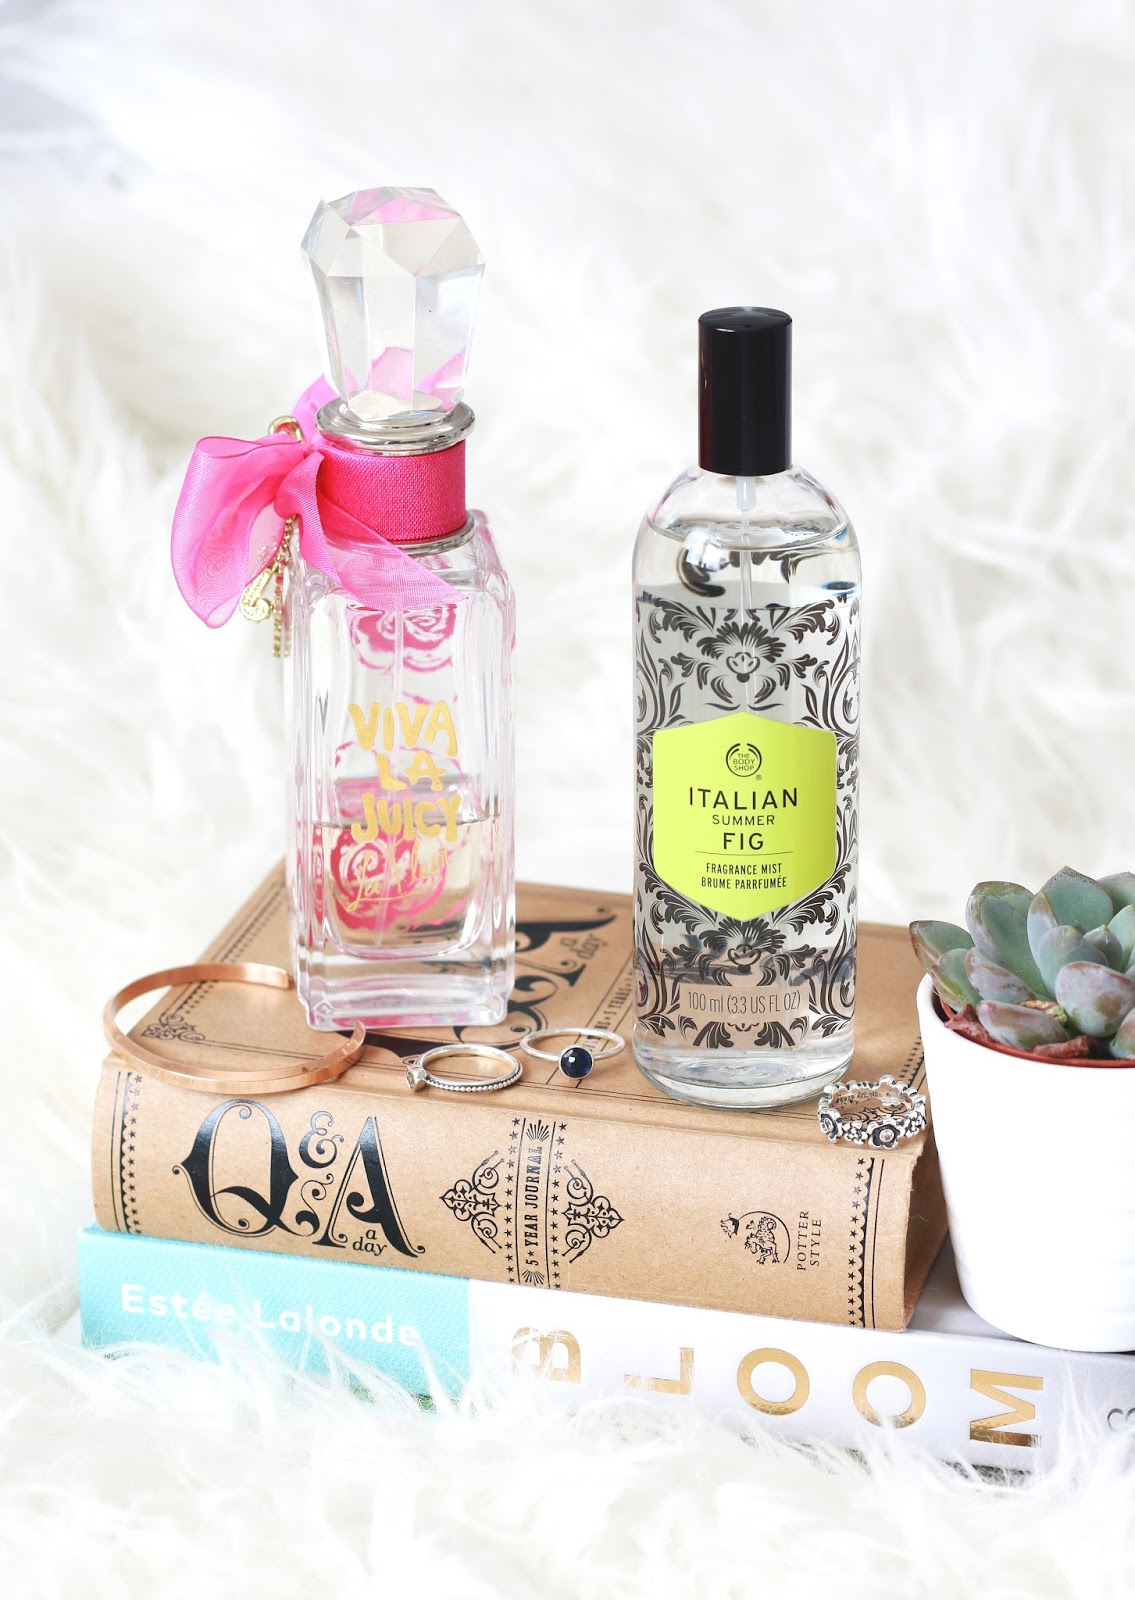 forever september, beauty blogger, lifestyle blogger, summer scents, fragrance, summer fragrance, the body shop, viva la juicy, juicy couture